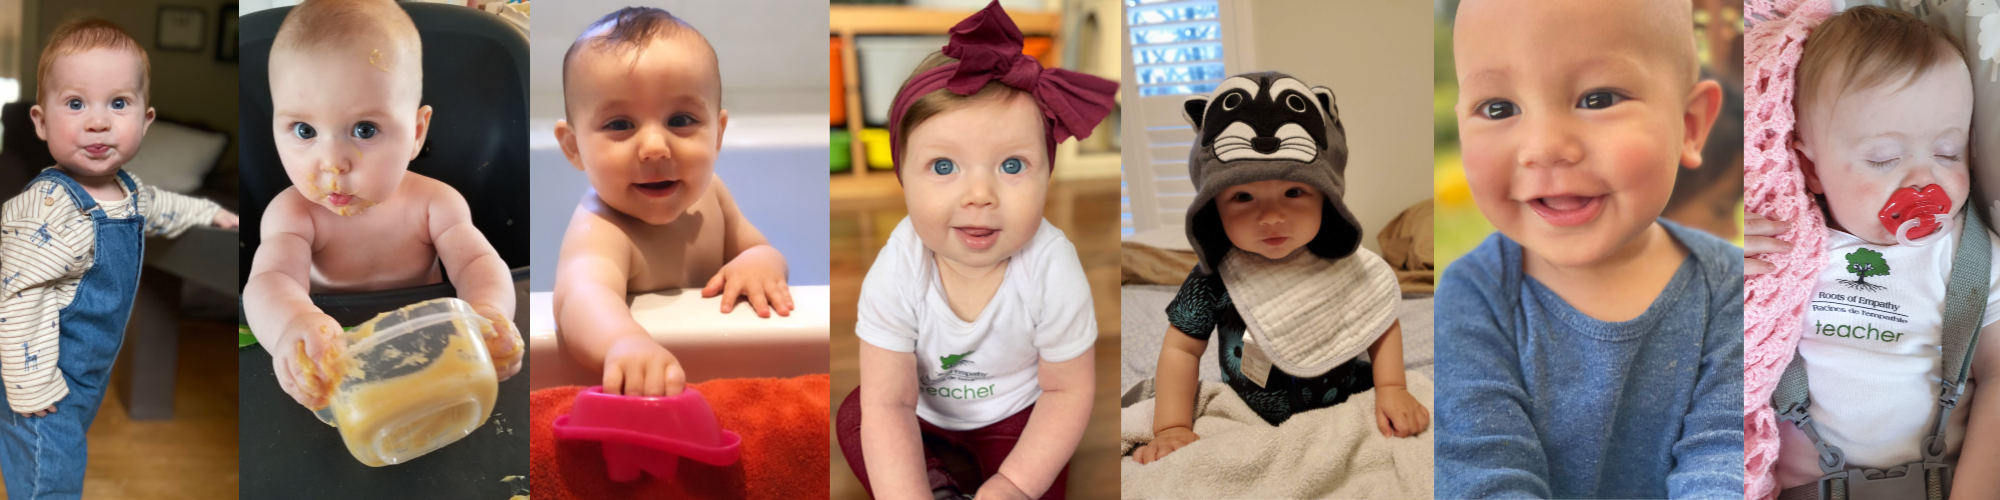 a row of pictures of 7 babies